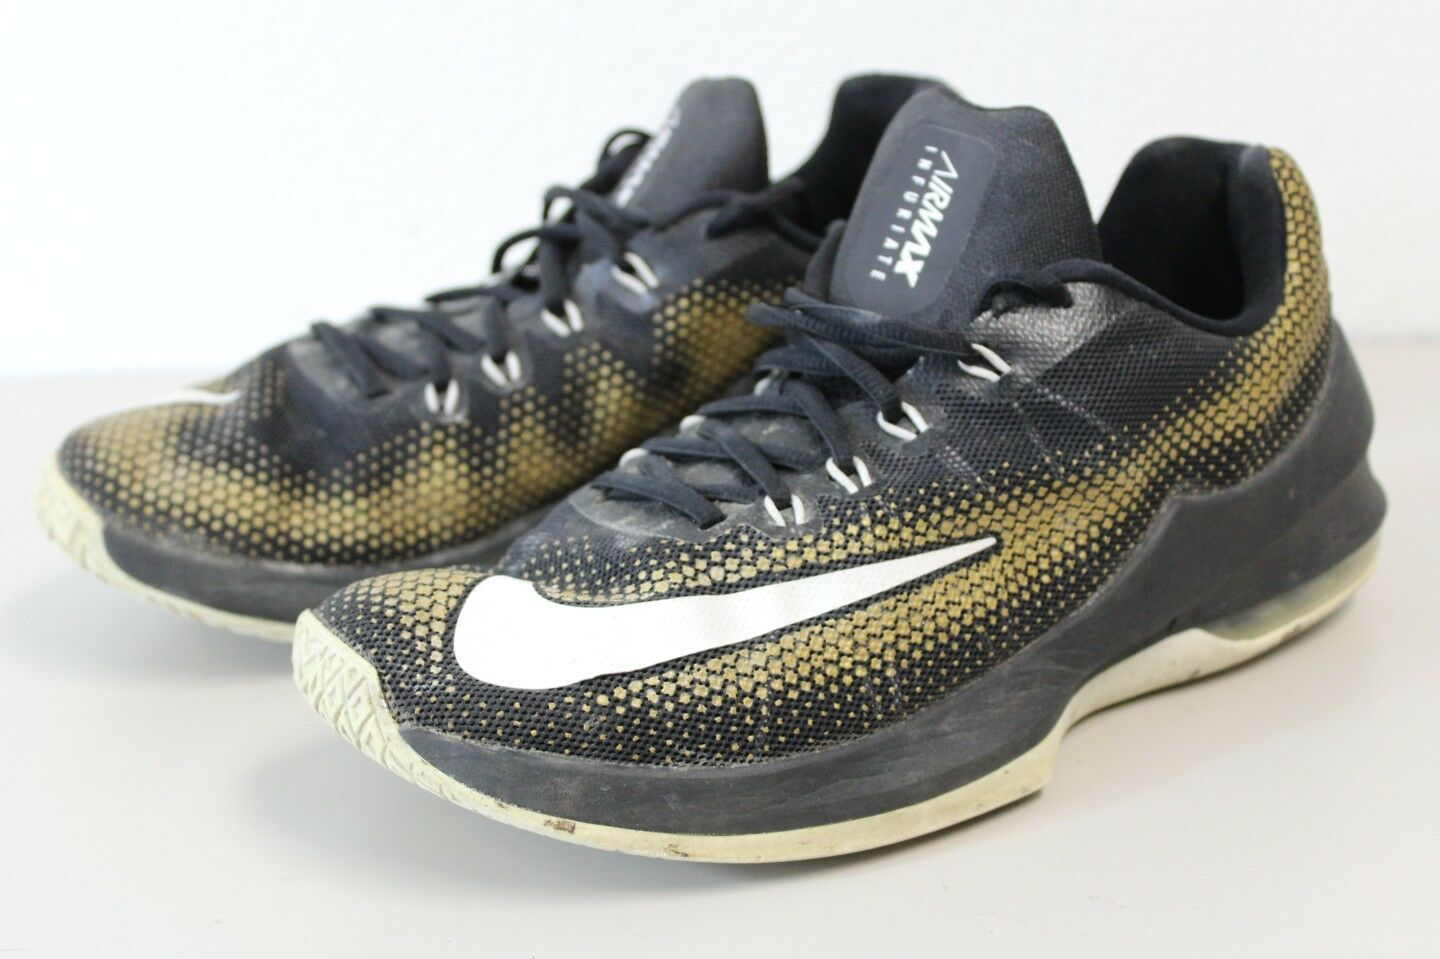 Nike Air Max Infuriate Low sneakers shoes golden black Price reduction Brand discount